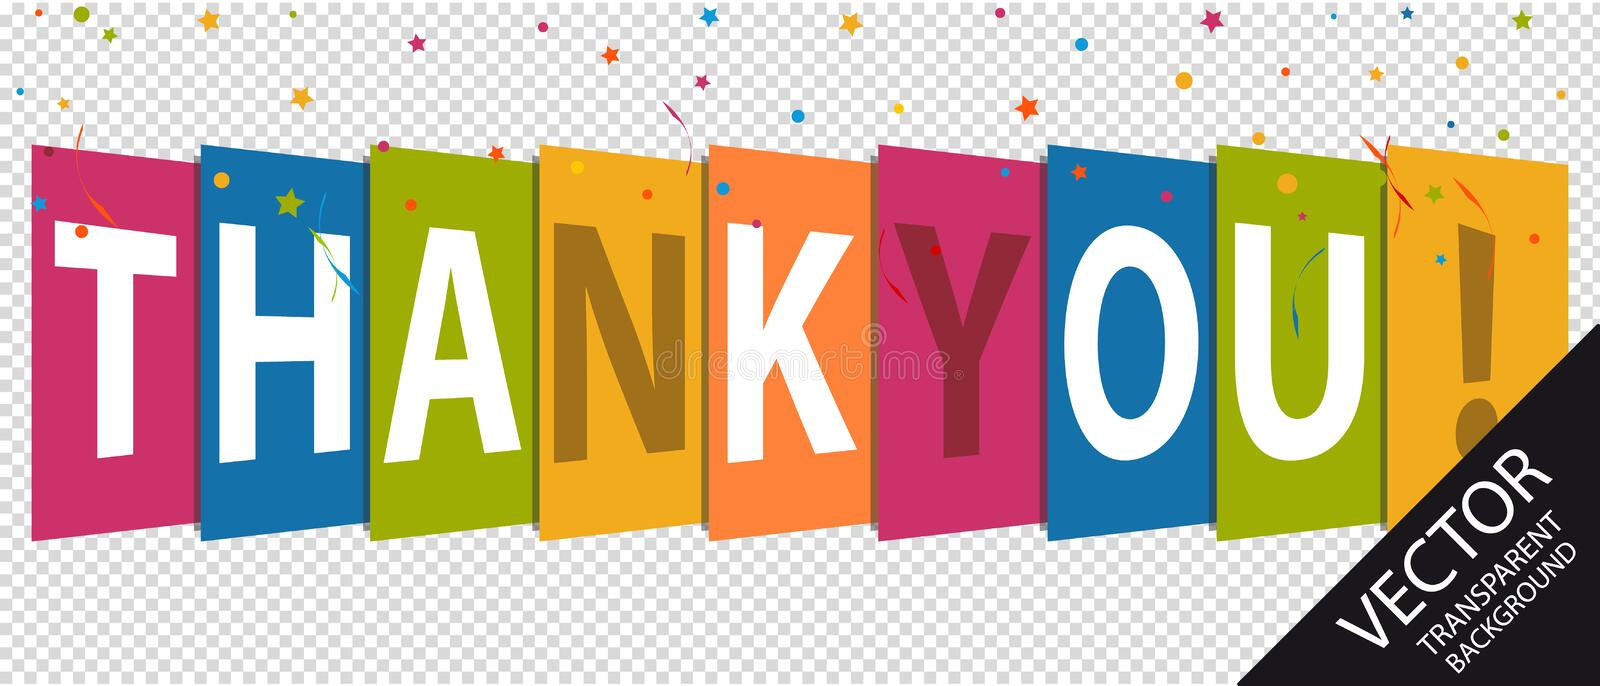 Thank You - Colorful Vector Illustration - Isolated On Transparent Background royalty free illustration